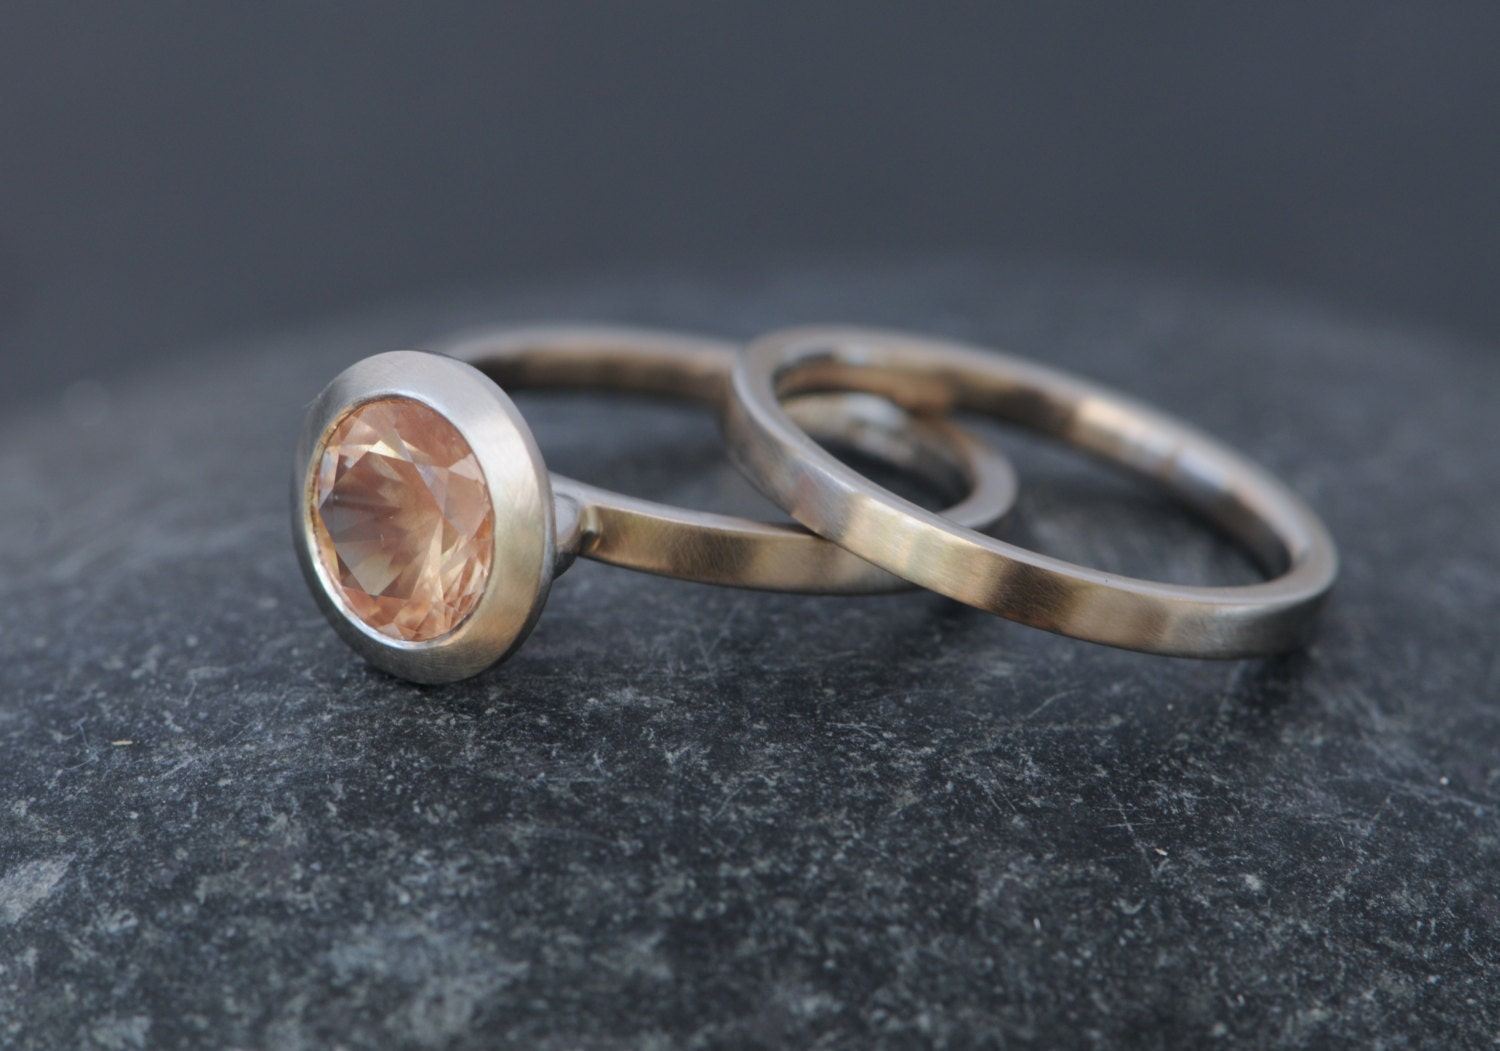 the ring rings of oregon lovely engagement sun designs stone store sunstone